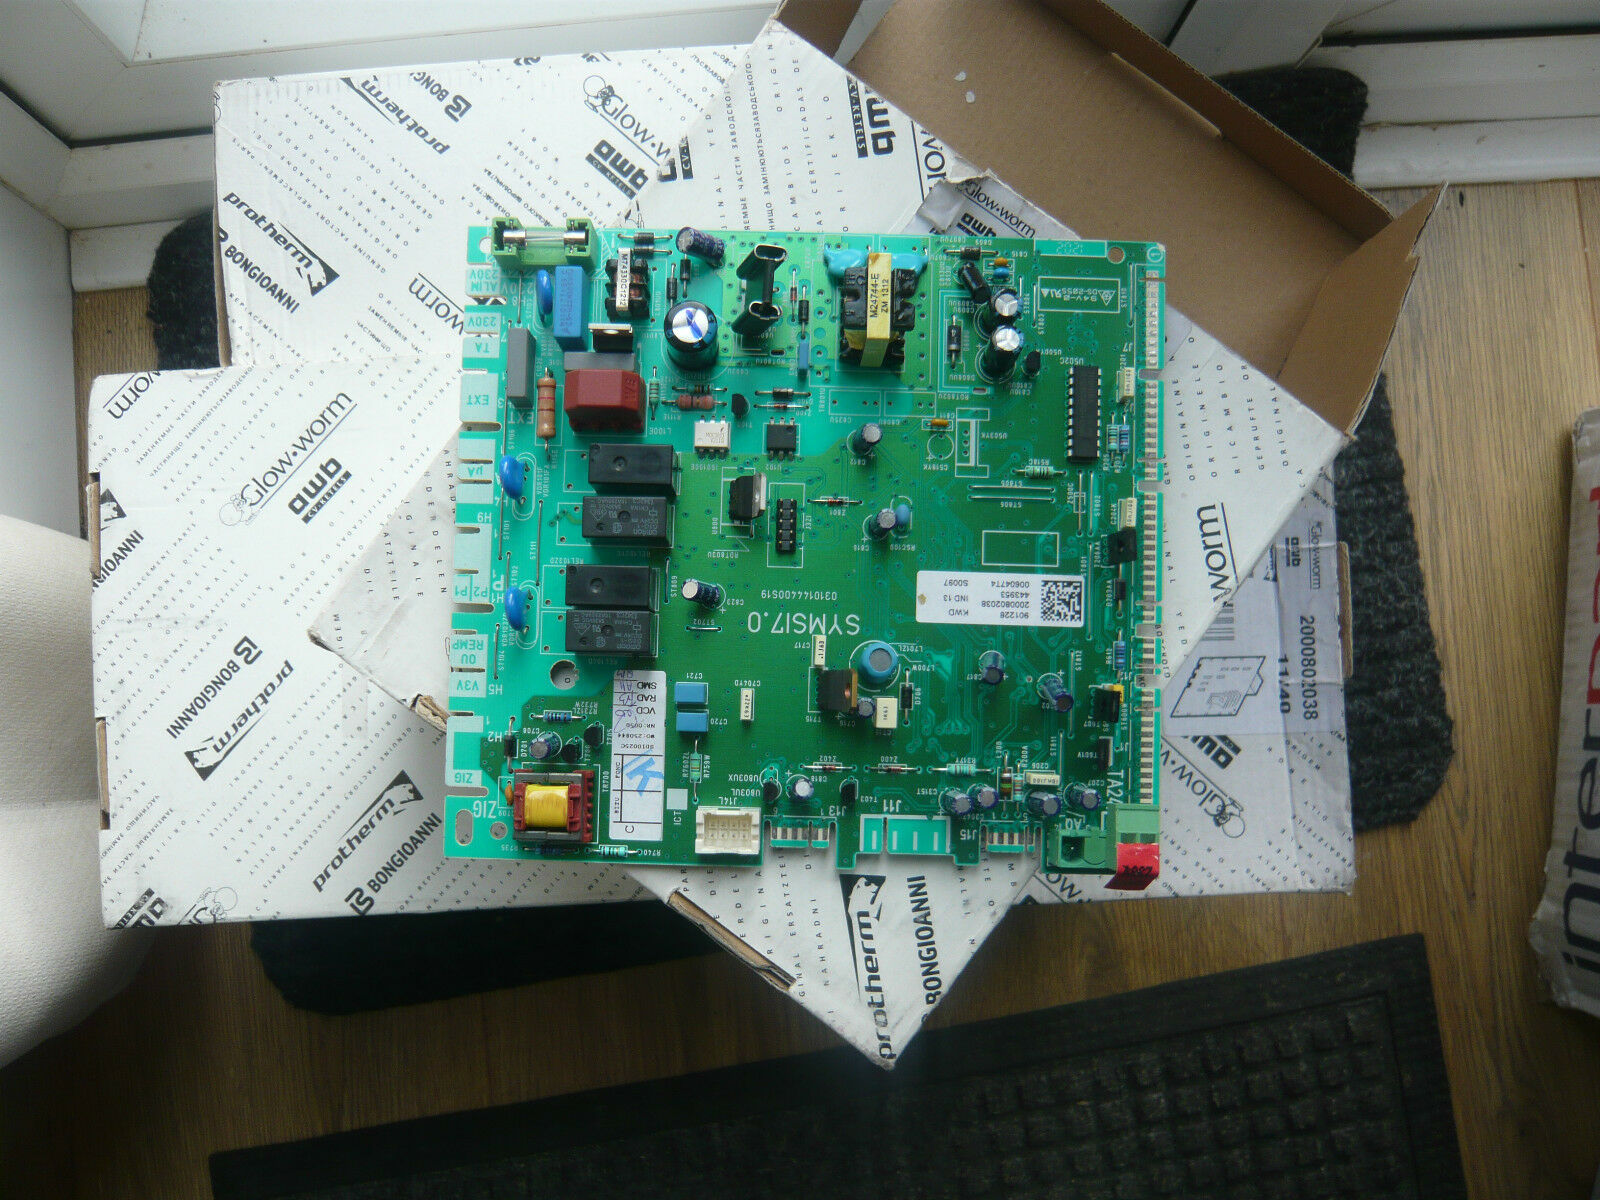 glowworm ci main pcb 2000802038 number on board 735004 v087 sauniernorton secured powered by verisign